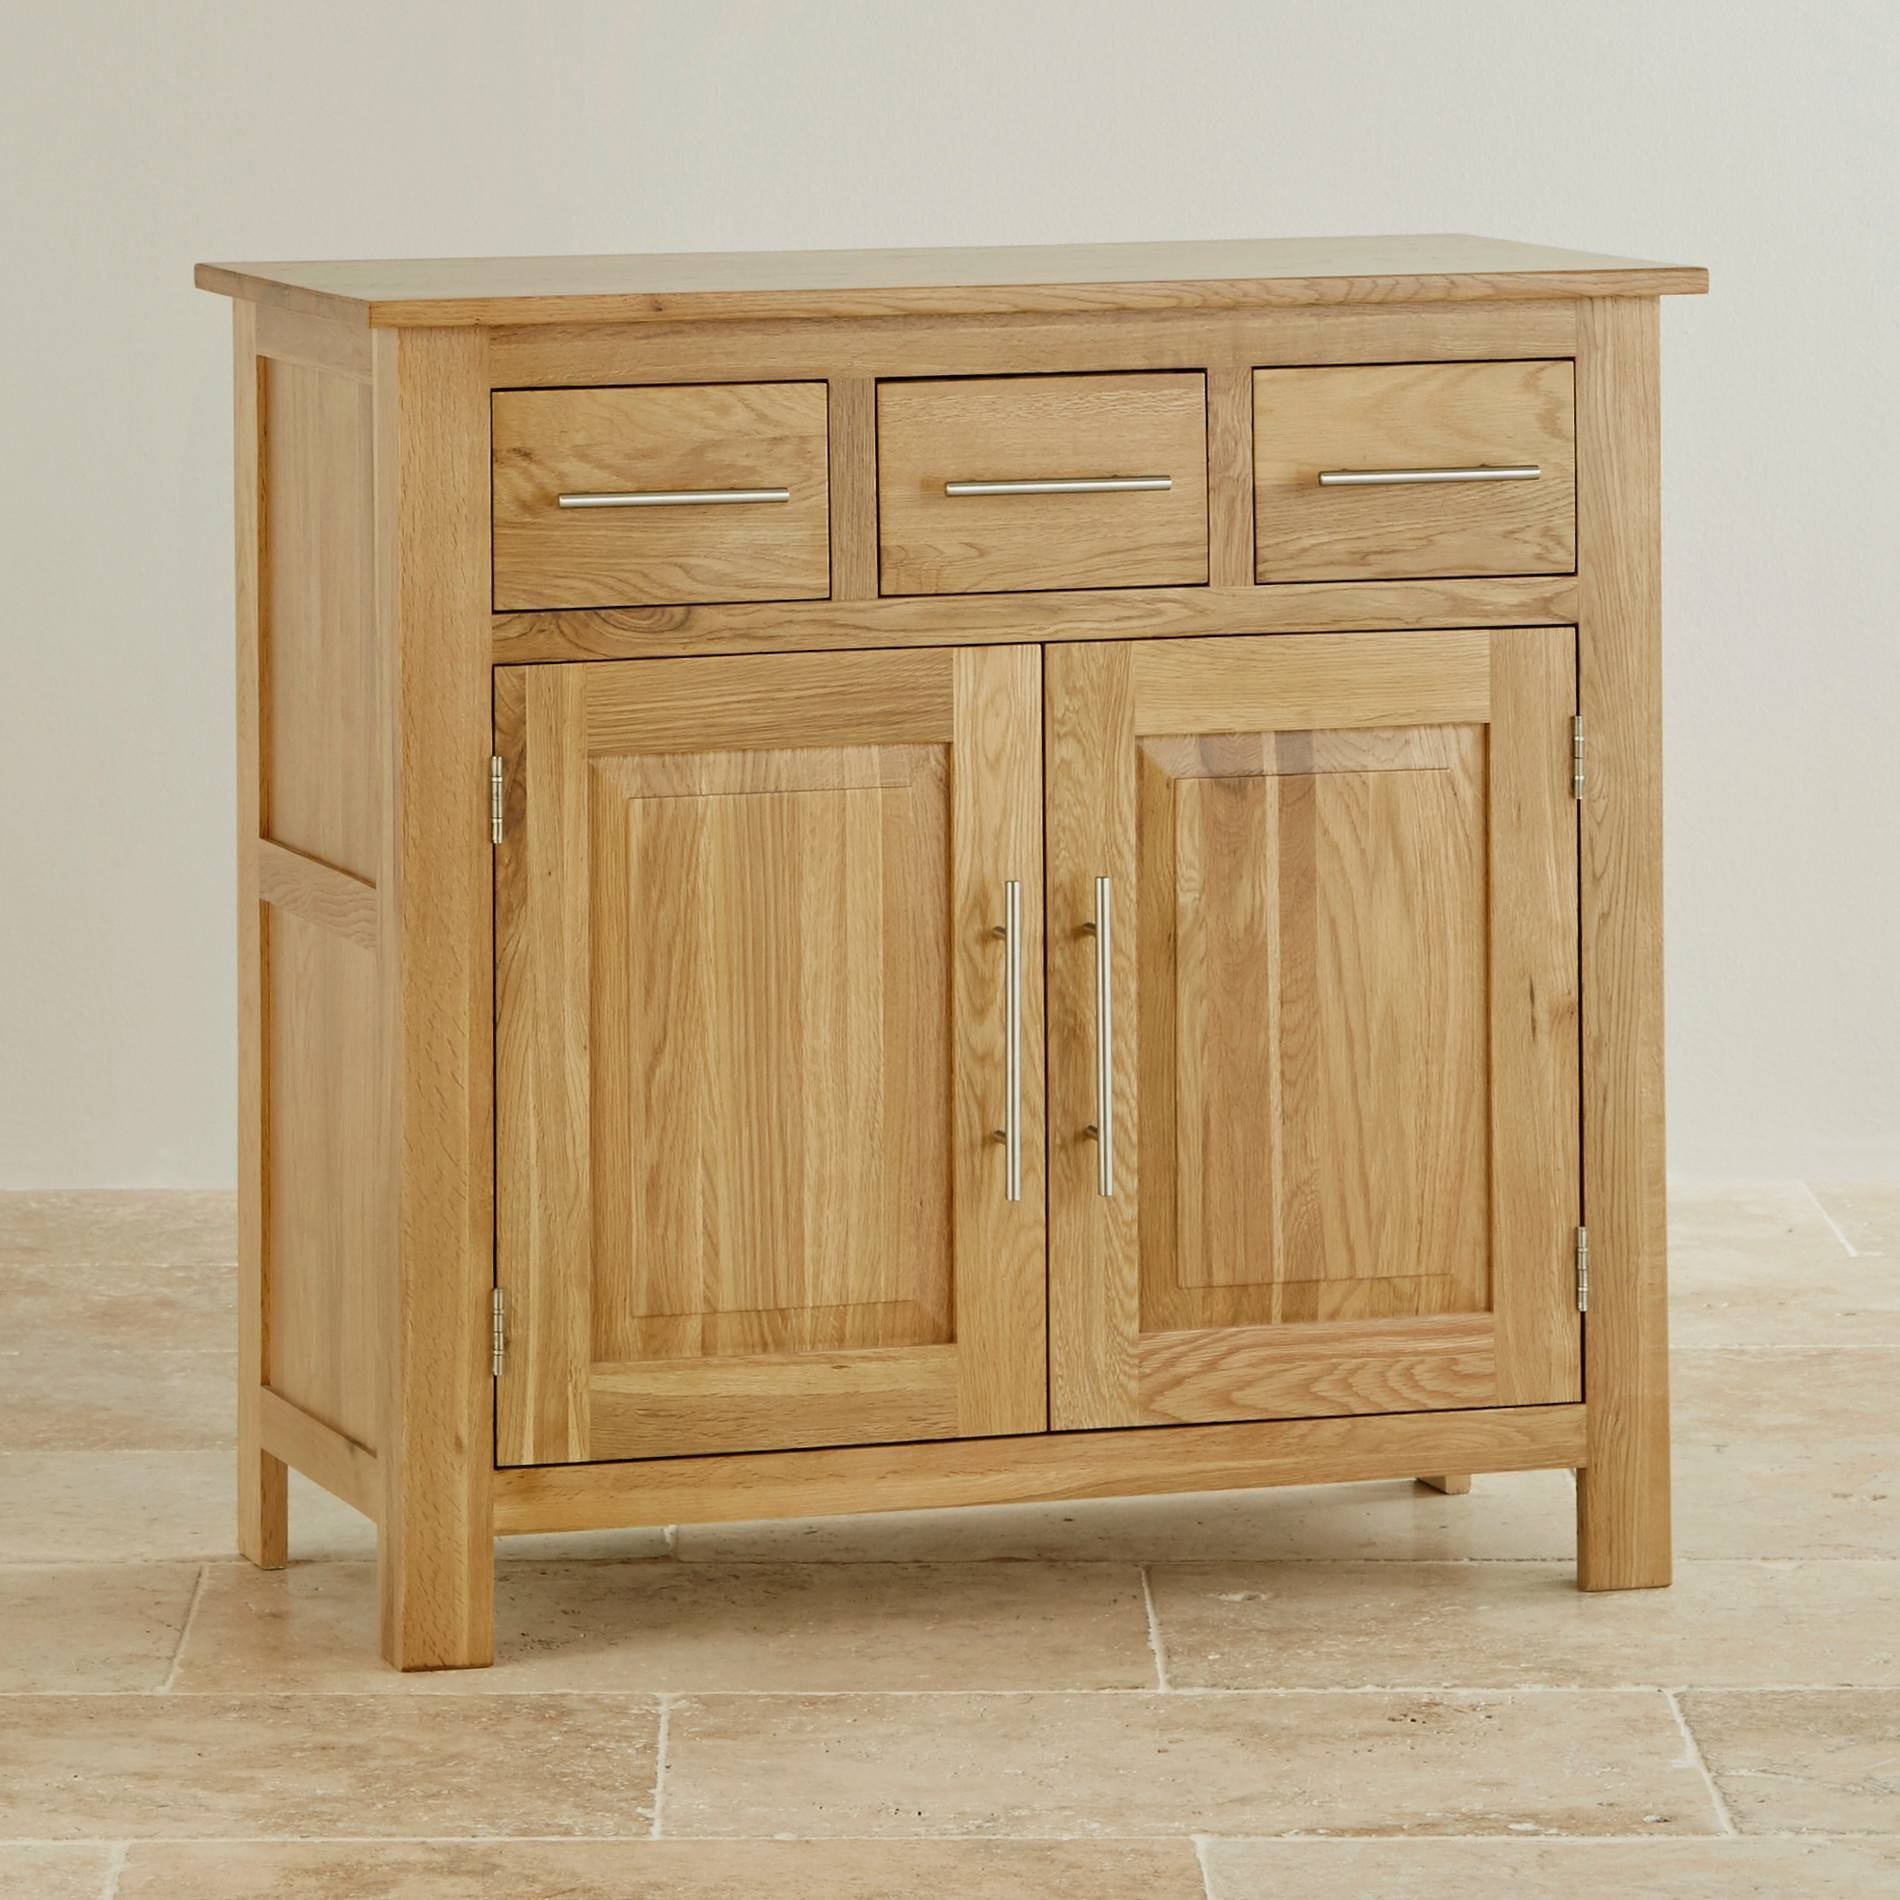 Elegant Small Solid Oak Sideboard – Buildsimplehome With Regard To Recent Oak Furniture Land Sideboards (View 12 of 15)